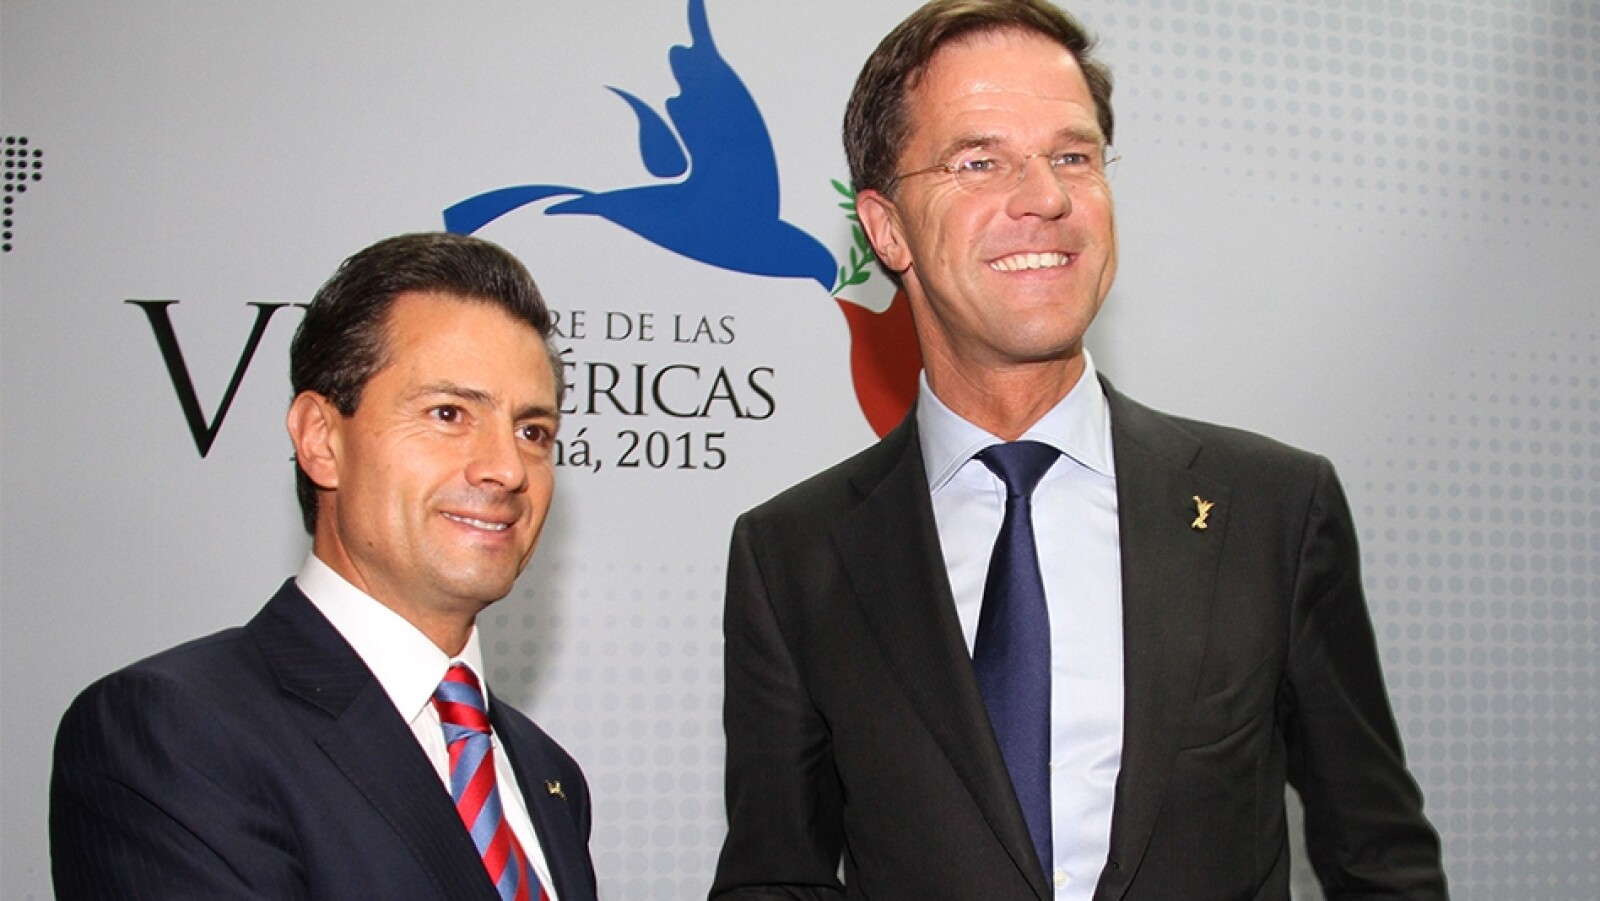 Enrique Peña y Mark Rutte